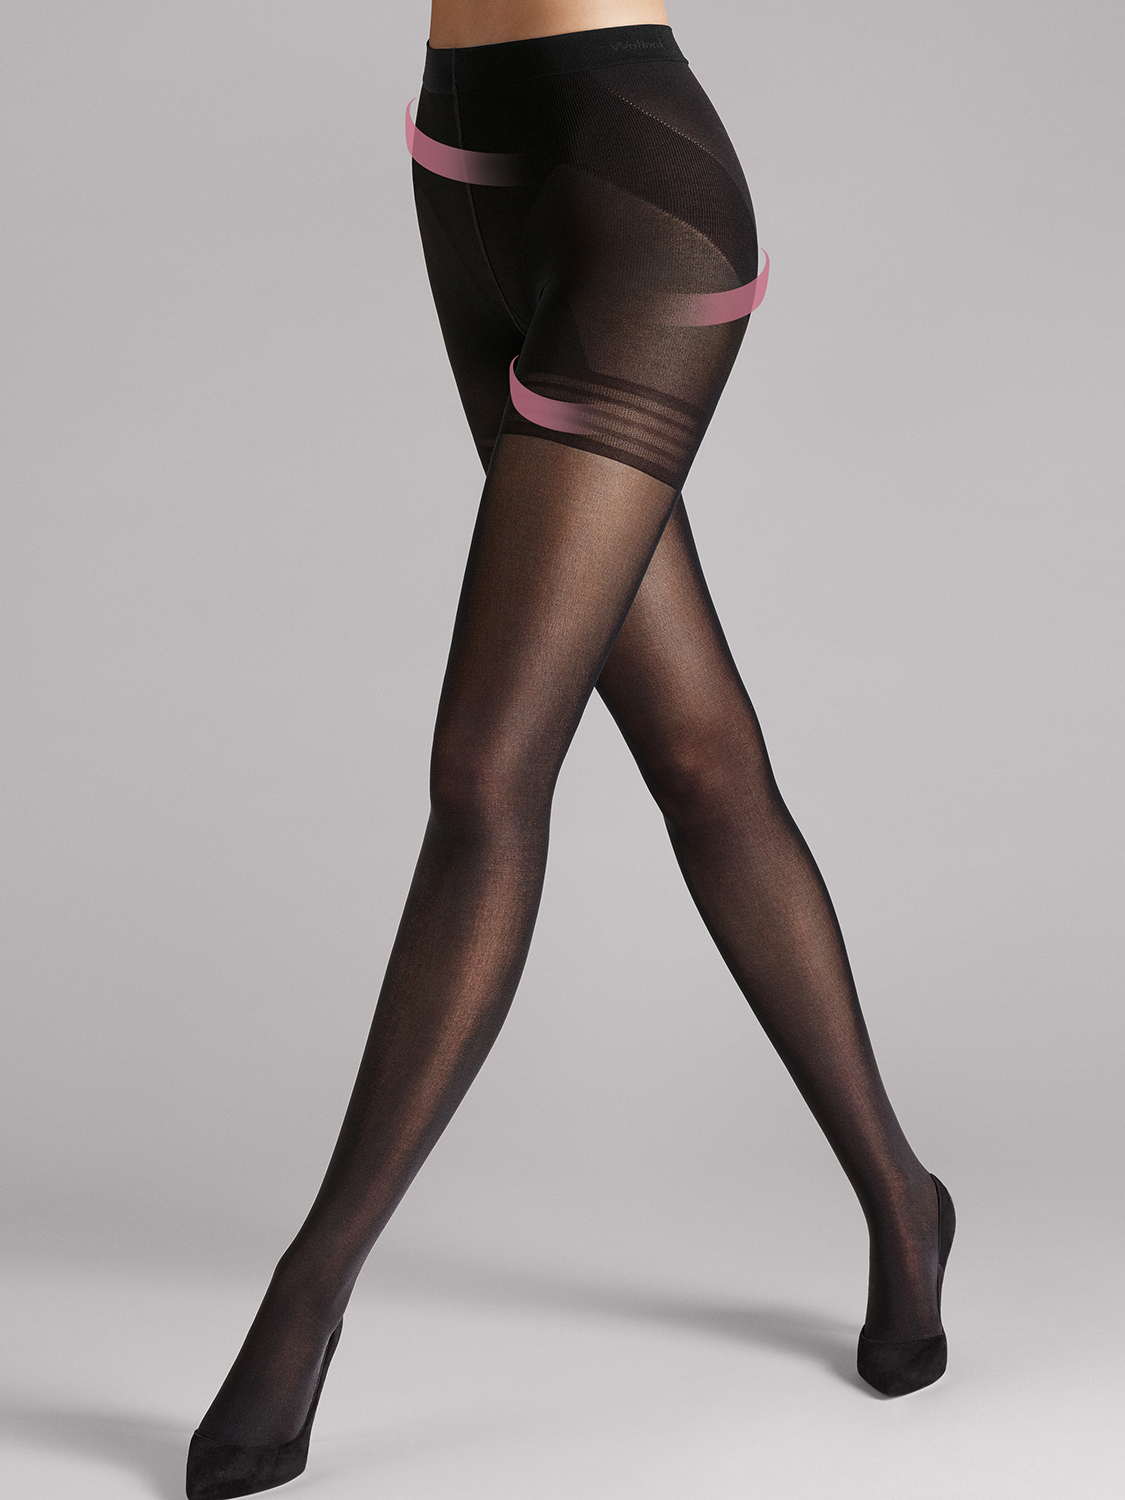 Колготы power shape 50 control top tights фото